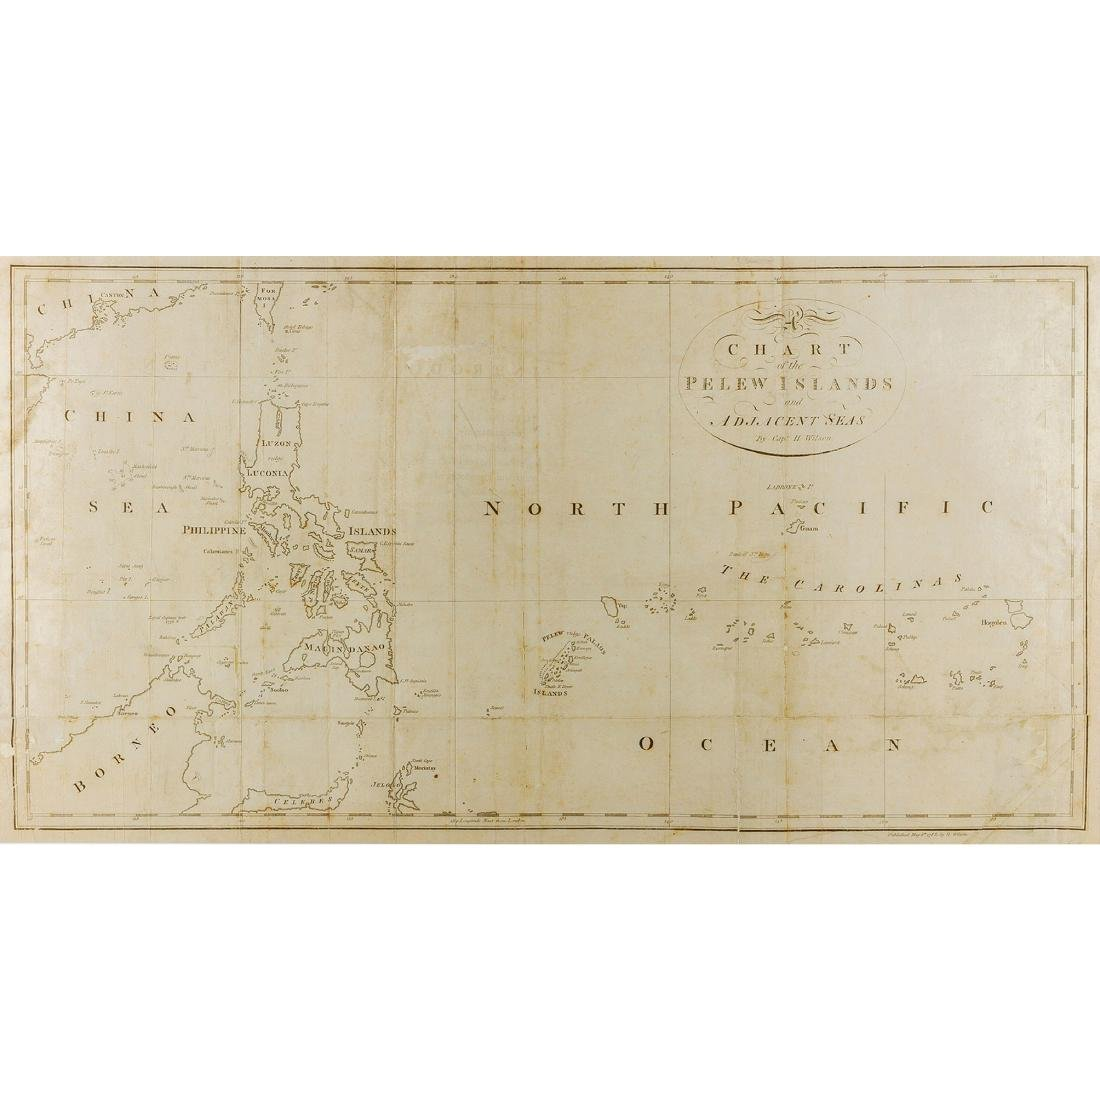 A chart of the Pelew Islands and adjacent seas London